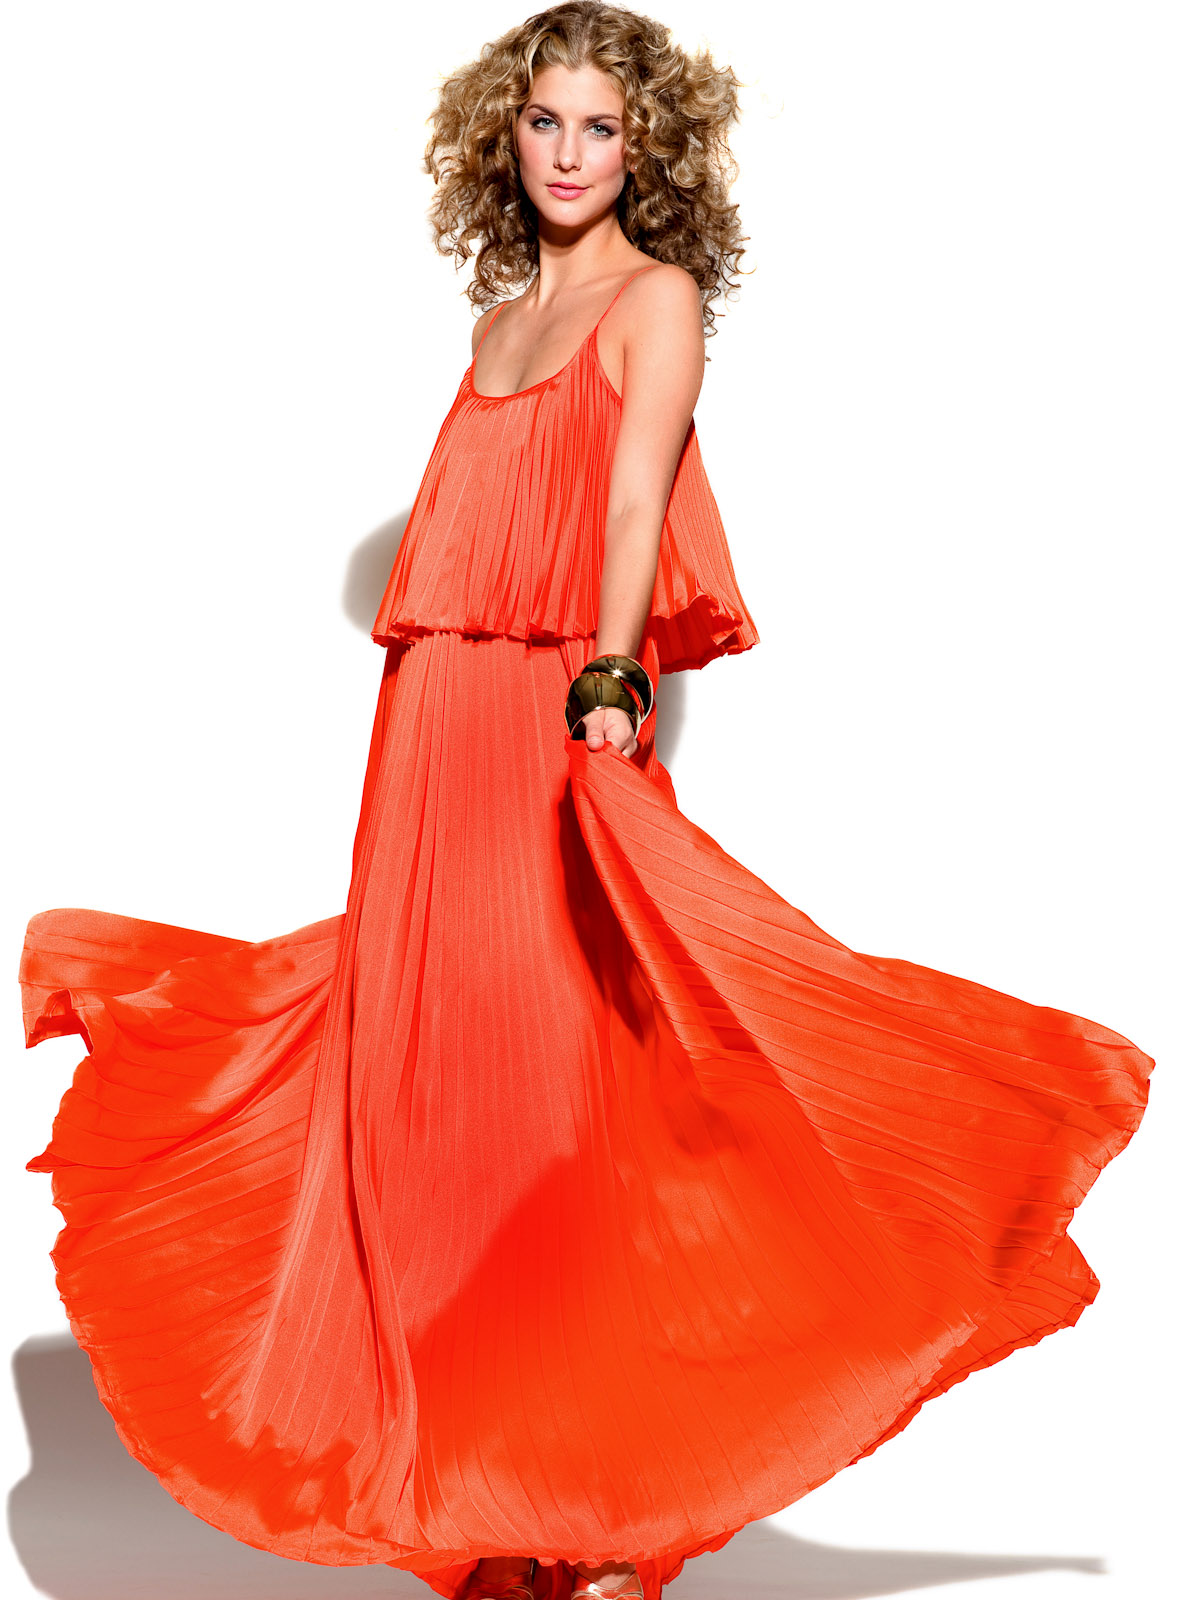 News_Heather Staible_Sex and the City_Halston Heritage_orange gown